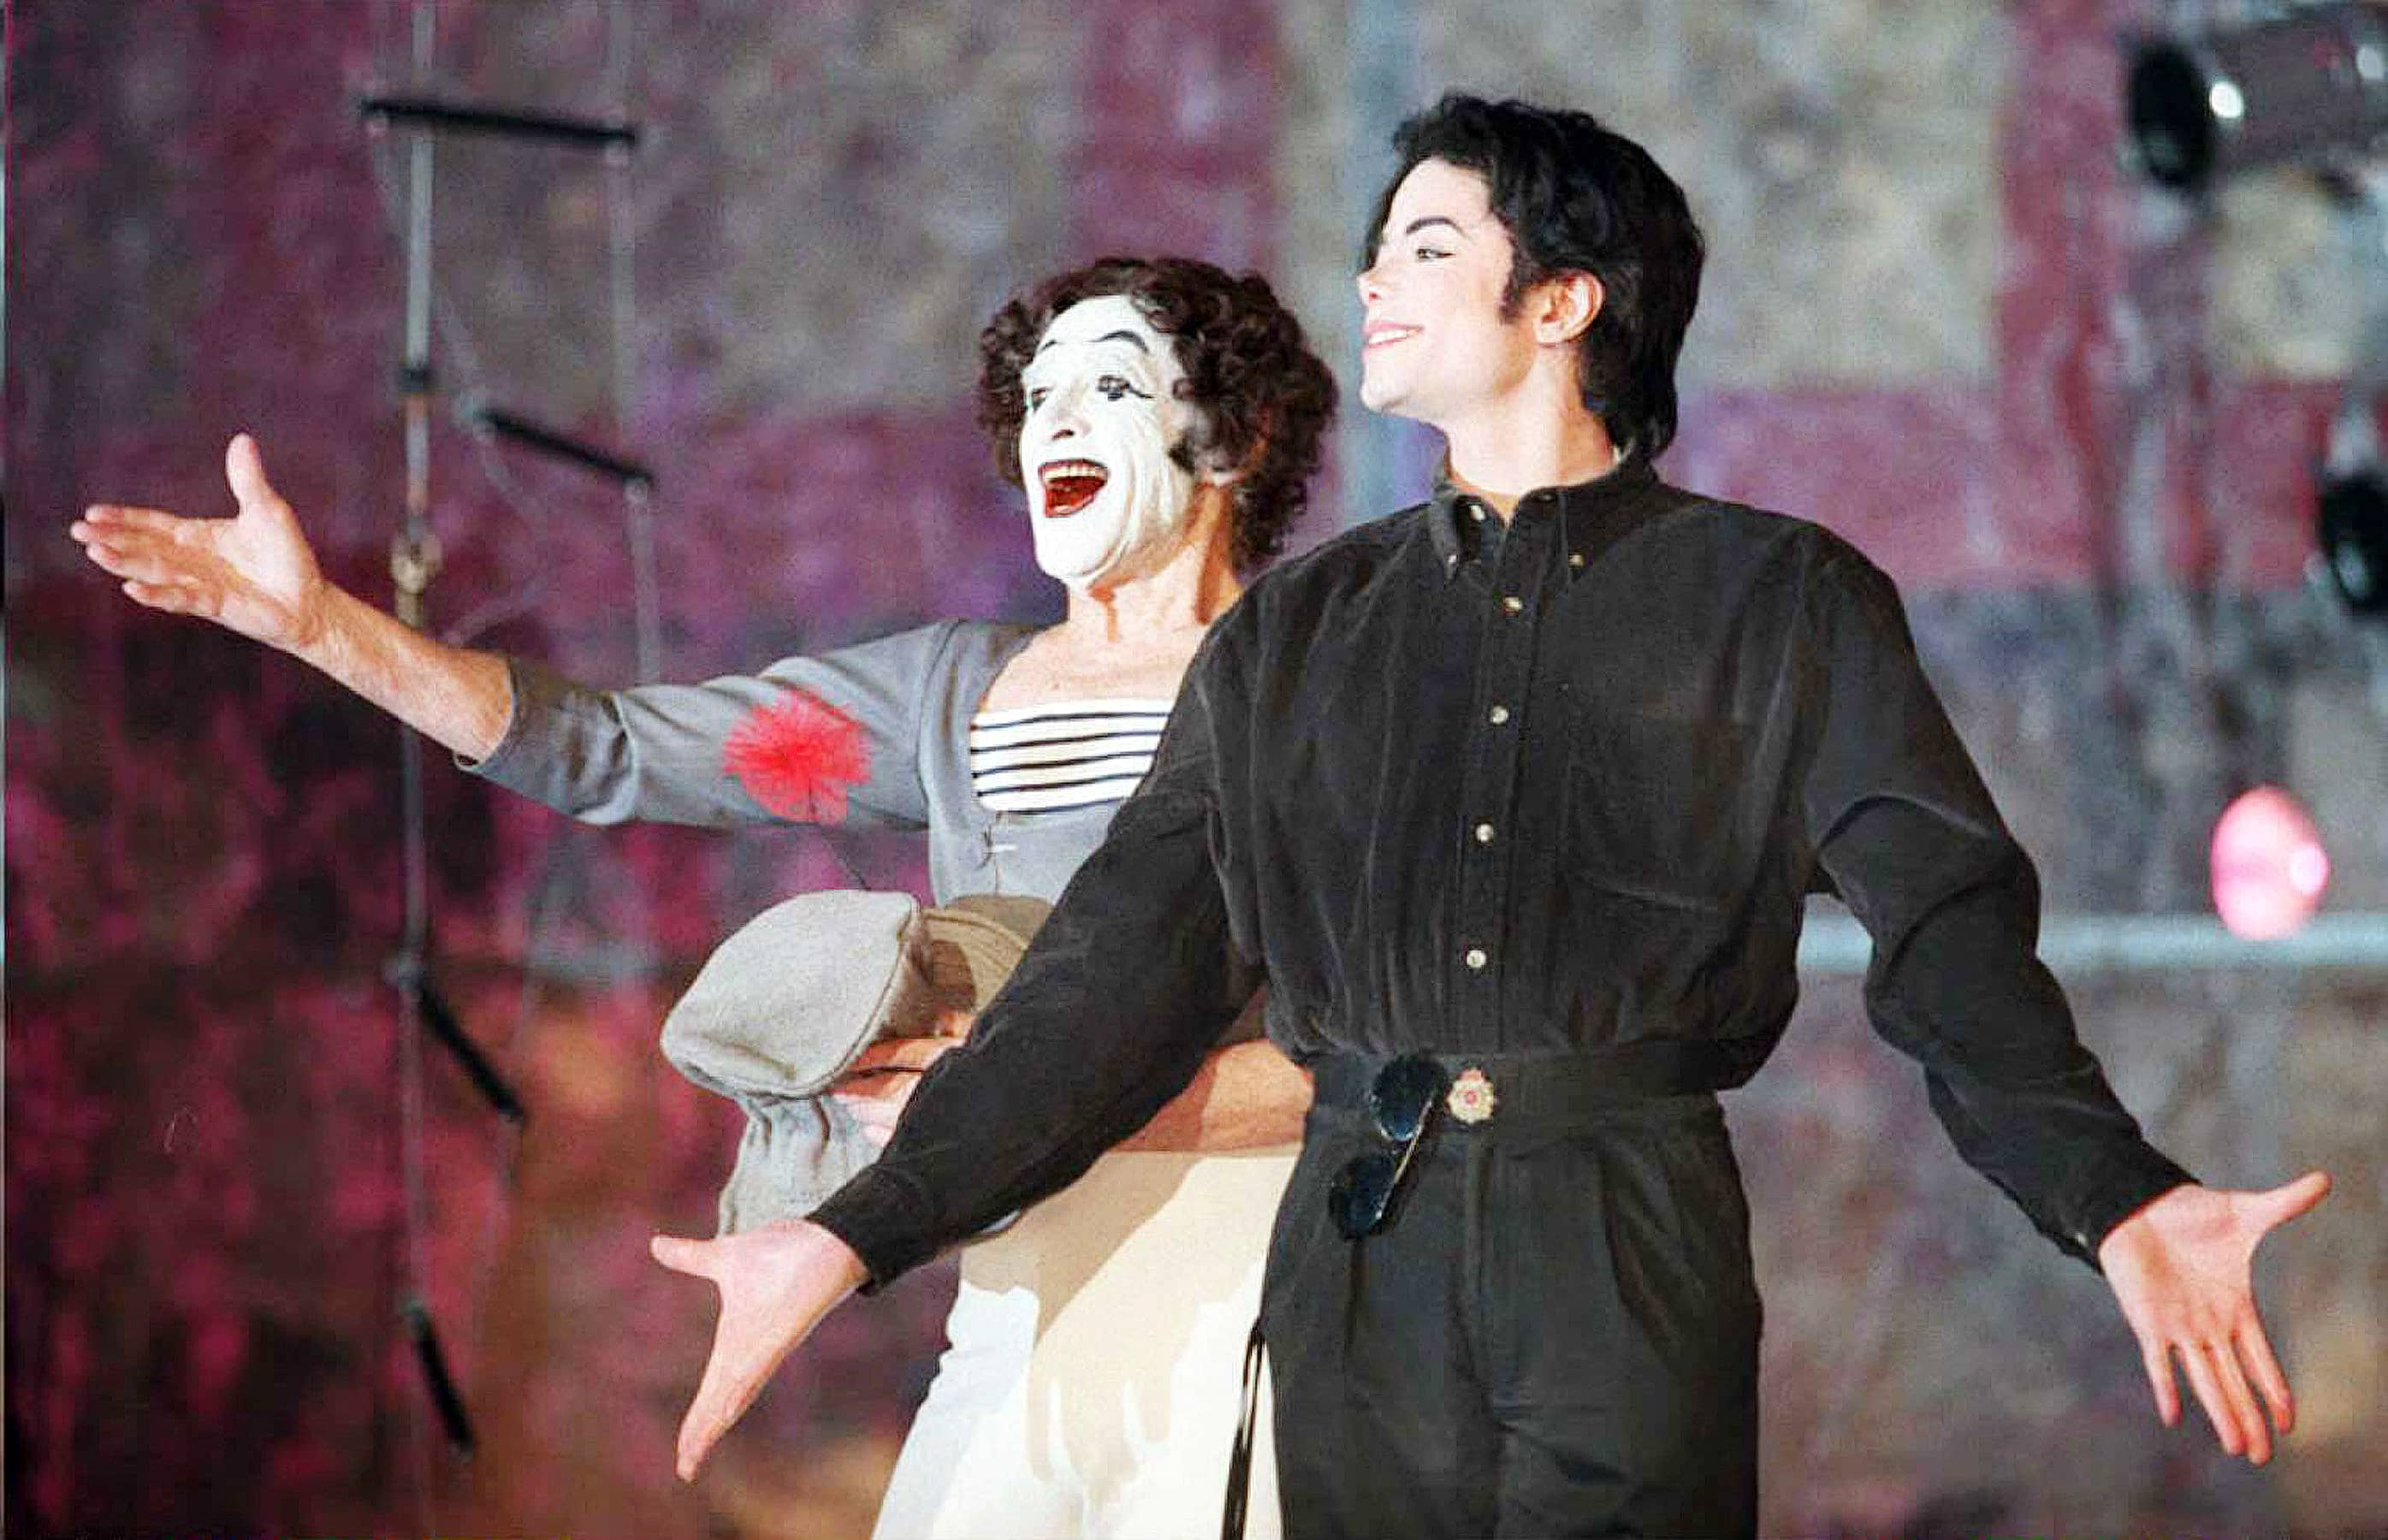 michael-jackson-mime-marceau-photo-bob-strong-afp-getty-images-newyork-france-eleonora-de-gray-editor-in-chief-runway-magazine-official-runwaymagazine